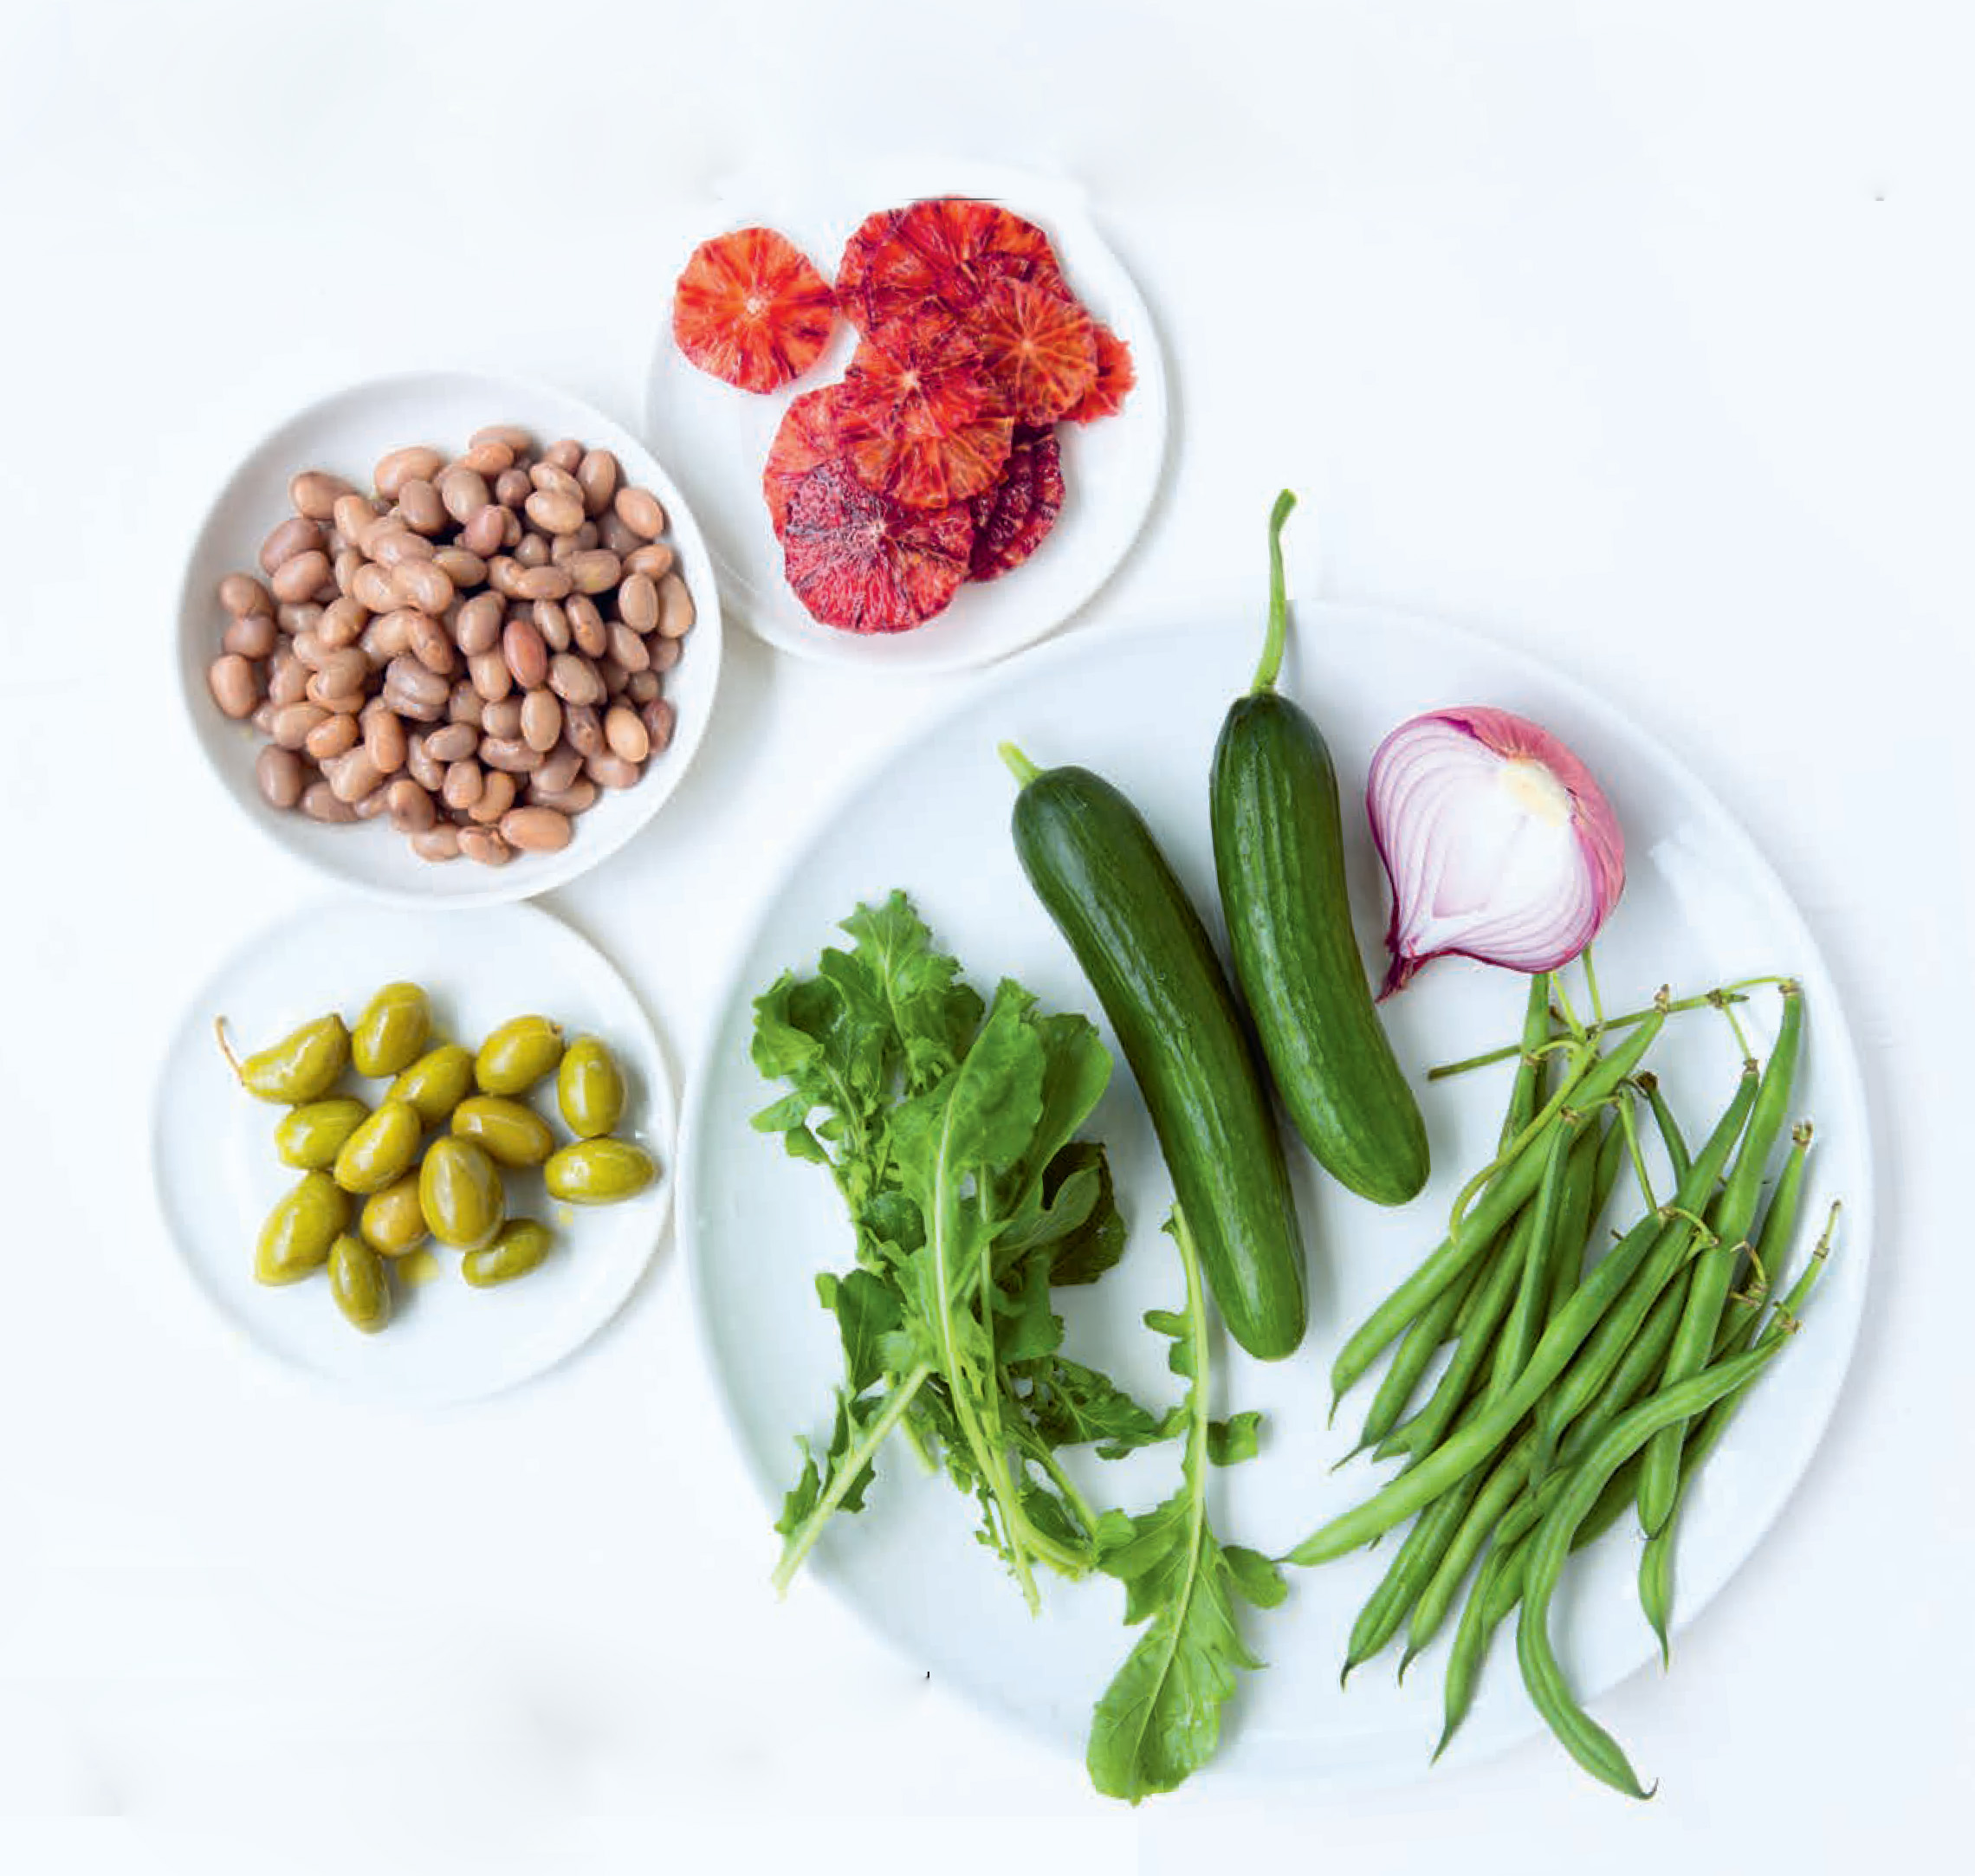 Borlotti beans with green vegetables